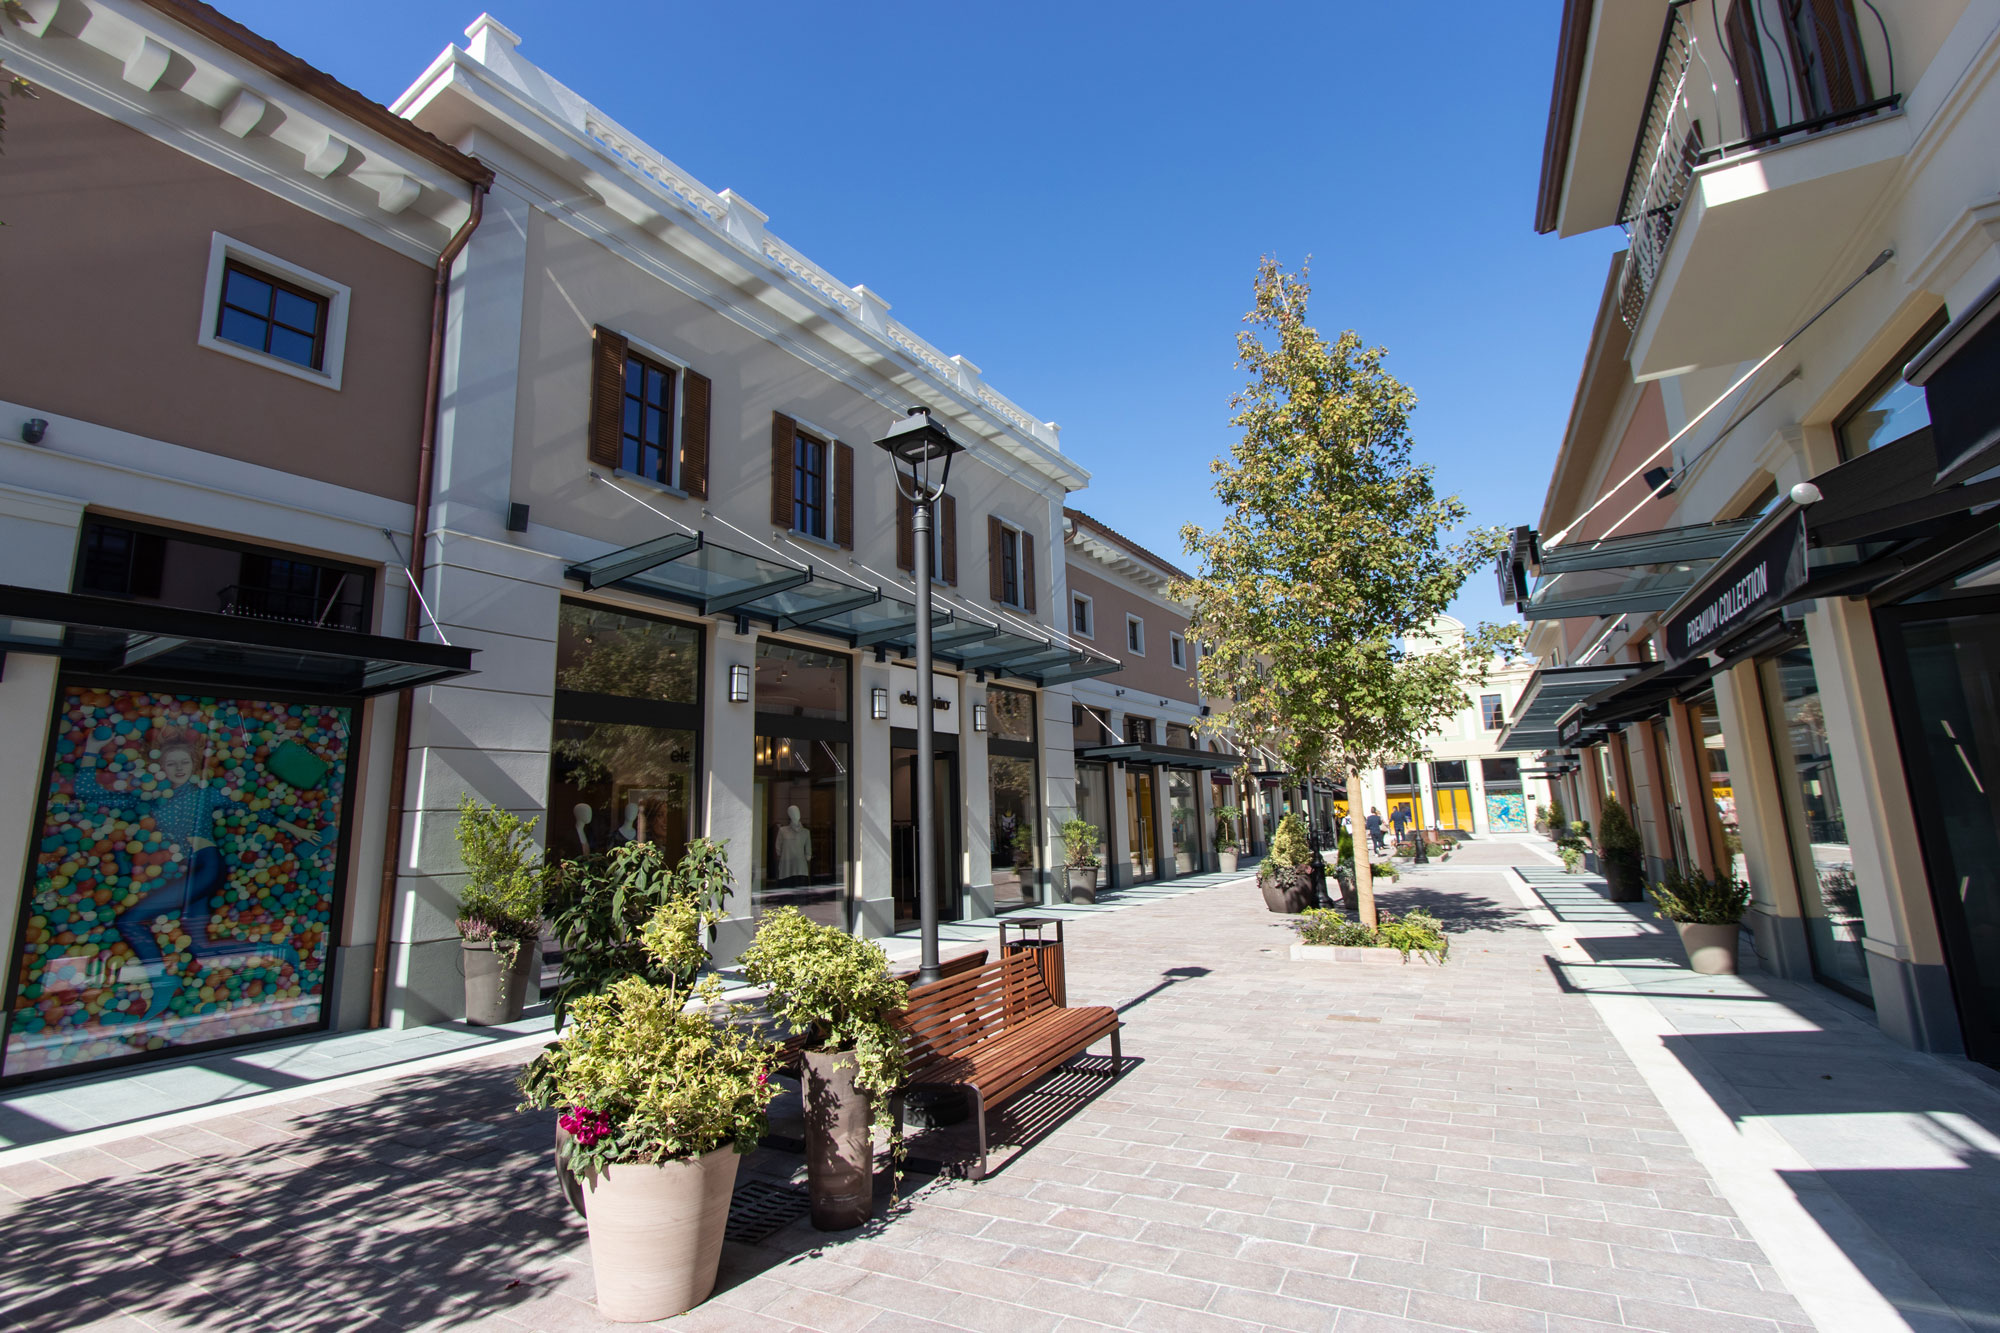 Franciacorta Outlet Village - Solids   Integrated Design Solutions